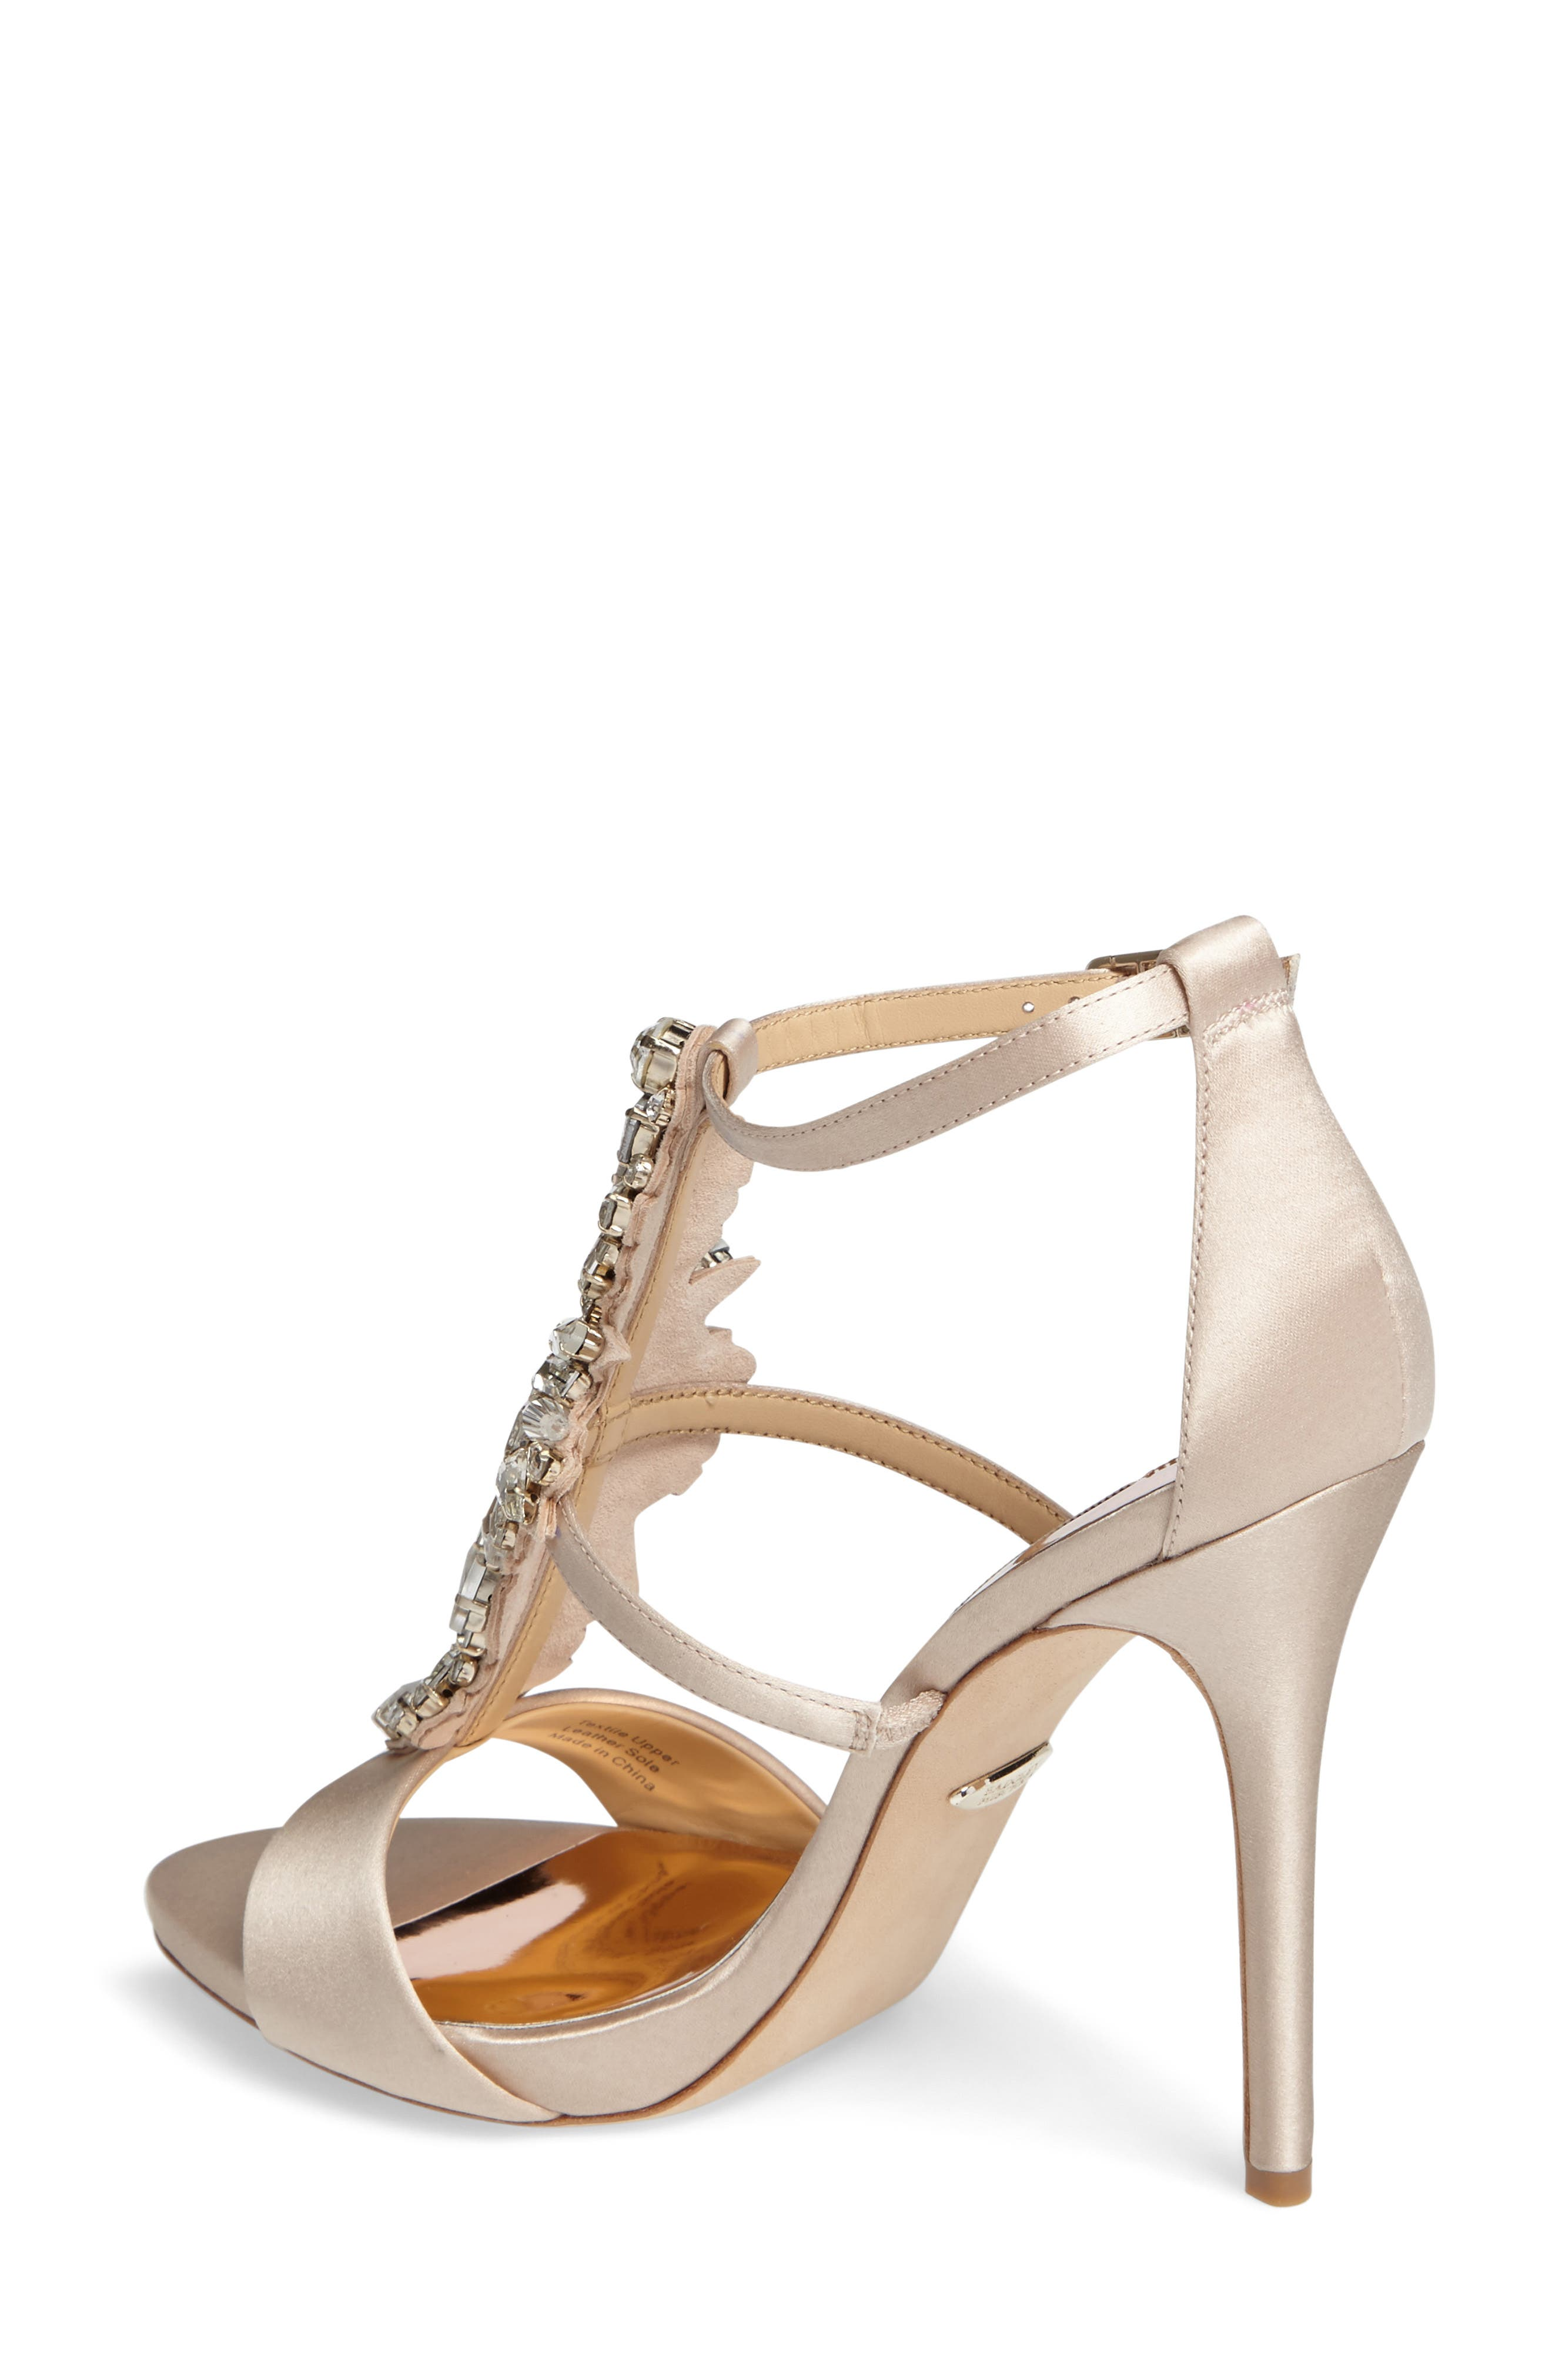 Badgley Mischka Basile Crystal Embellished Sandal,                             Alternate thumbnail 2, color,                             250